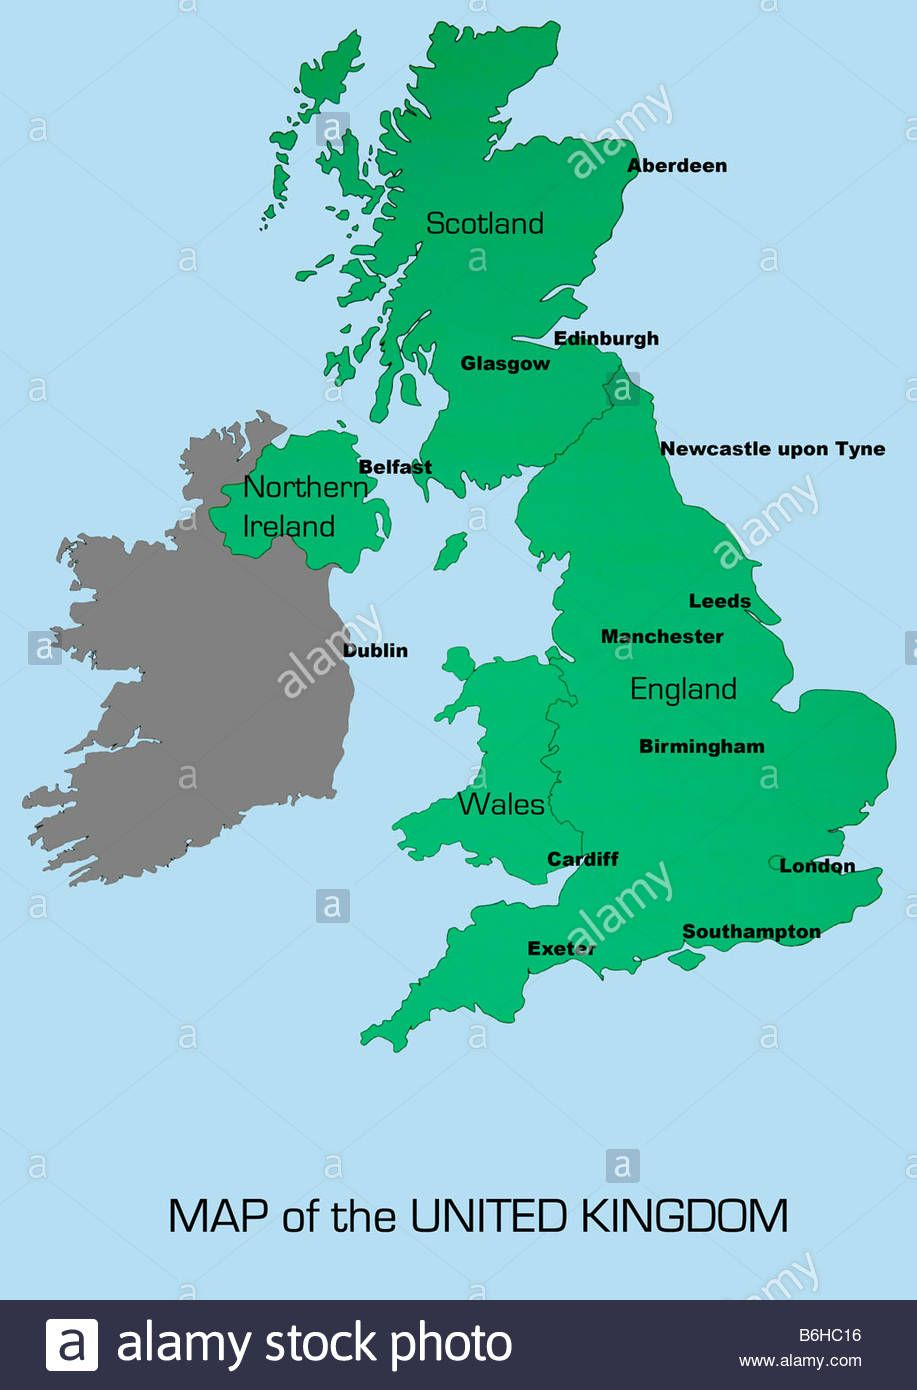 Map Of Northern Ireland Cities.Map British Isles Travel England England Map Map British Isles